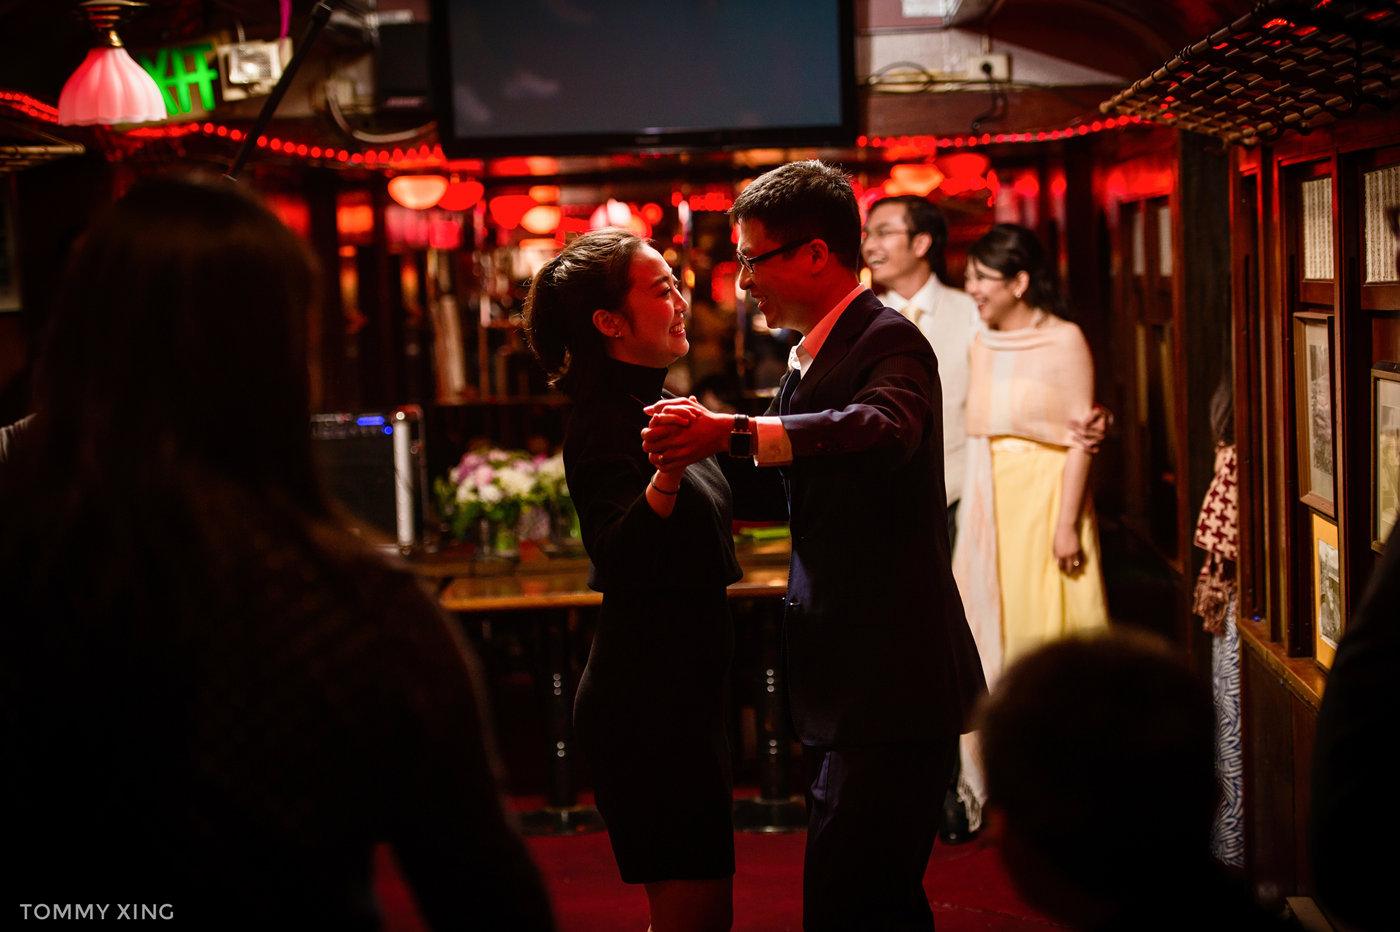 Seattle Wedding and pre wedding Los Angeles Tommy Xing Photography 西雅图洛杉矶旧金山婚礼婚纱照摄影师 204.jpg